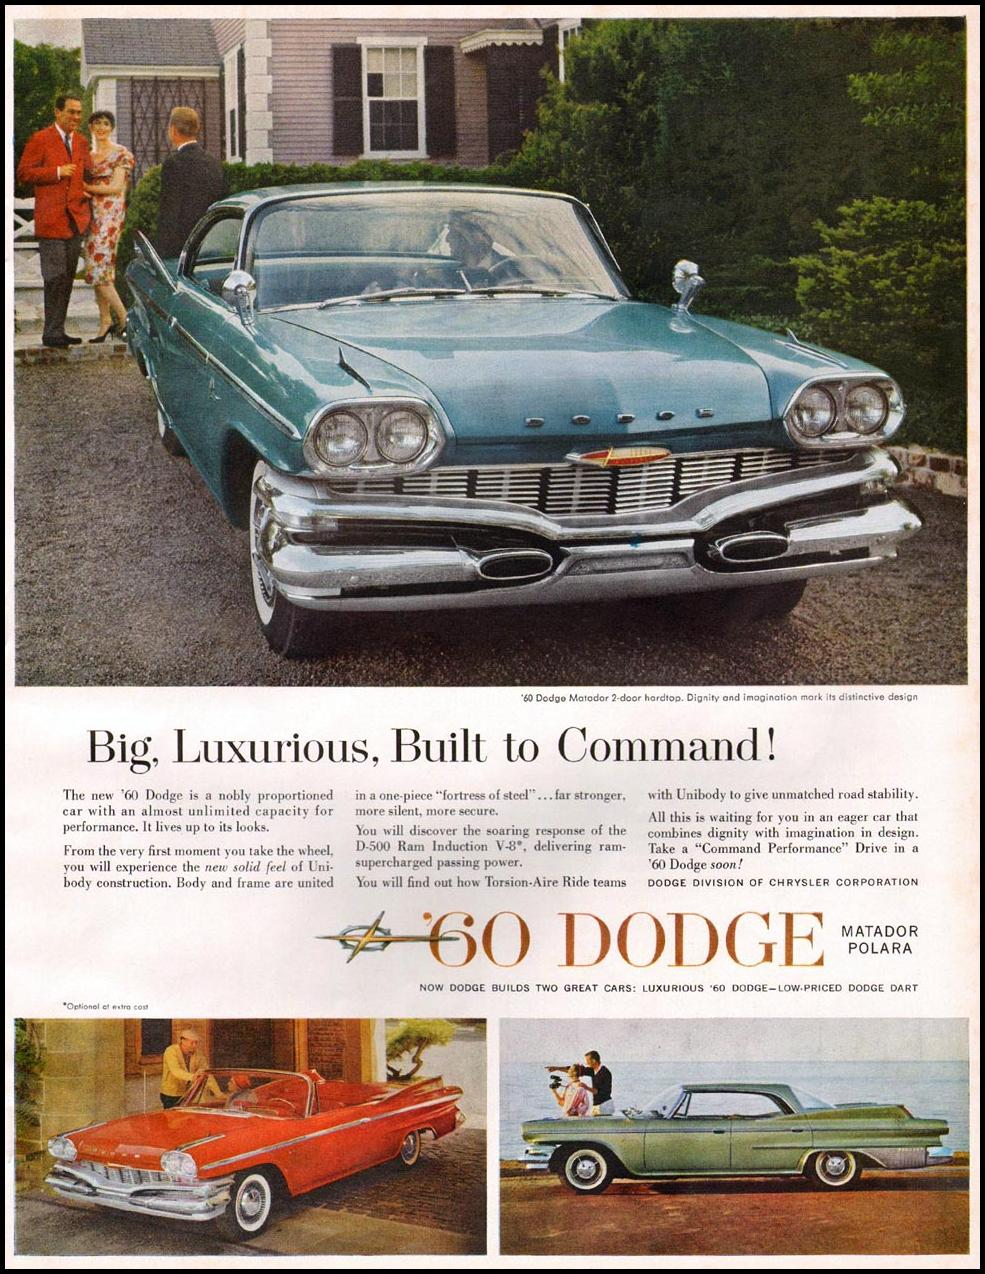 DODGE AUTOMOBILES BETTER HOMES AND GARDENS 03/01/1960 p. 49